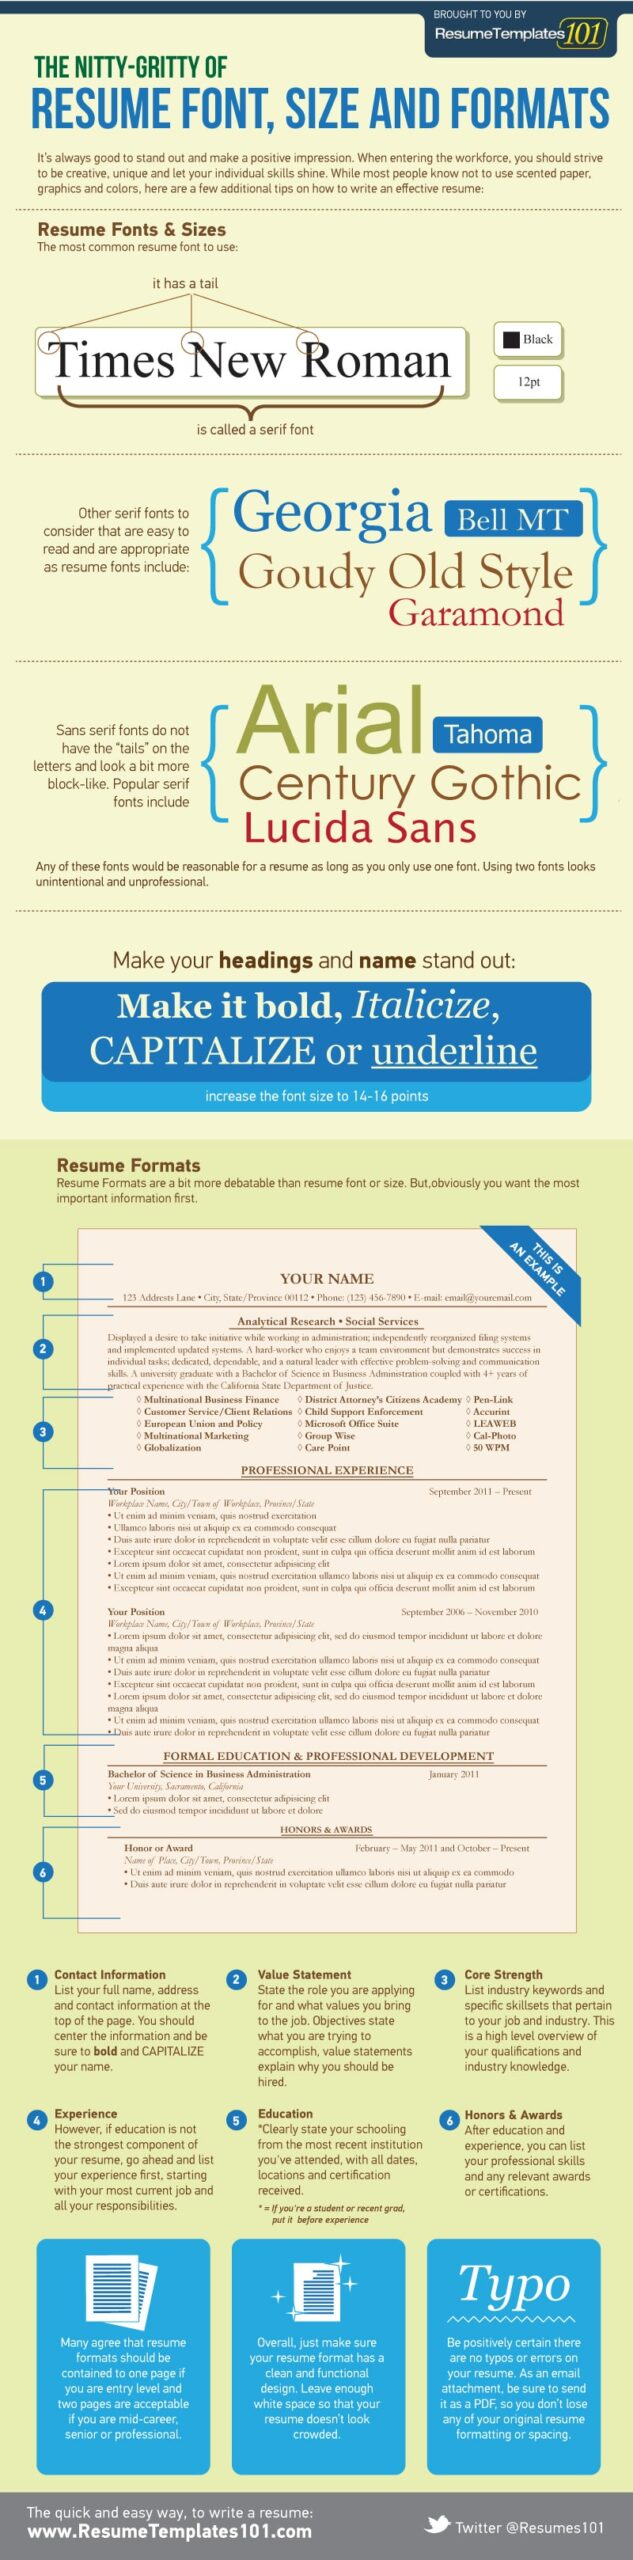 the best resume font size and format for fonts stanford career center executive template Resume Best Font Size For Resume 2020